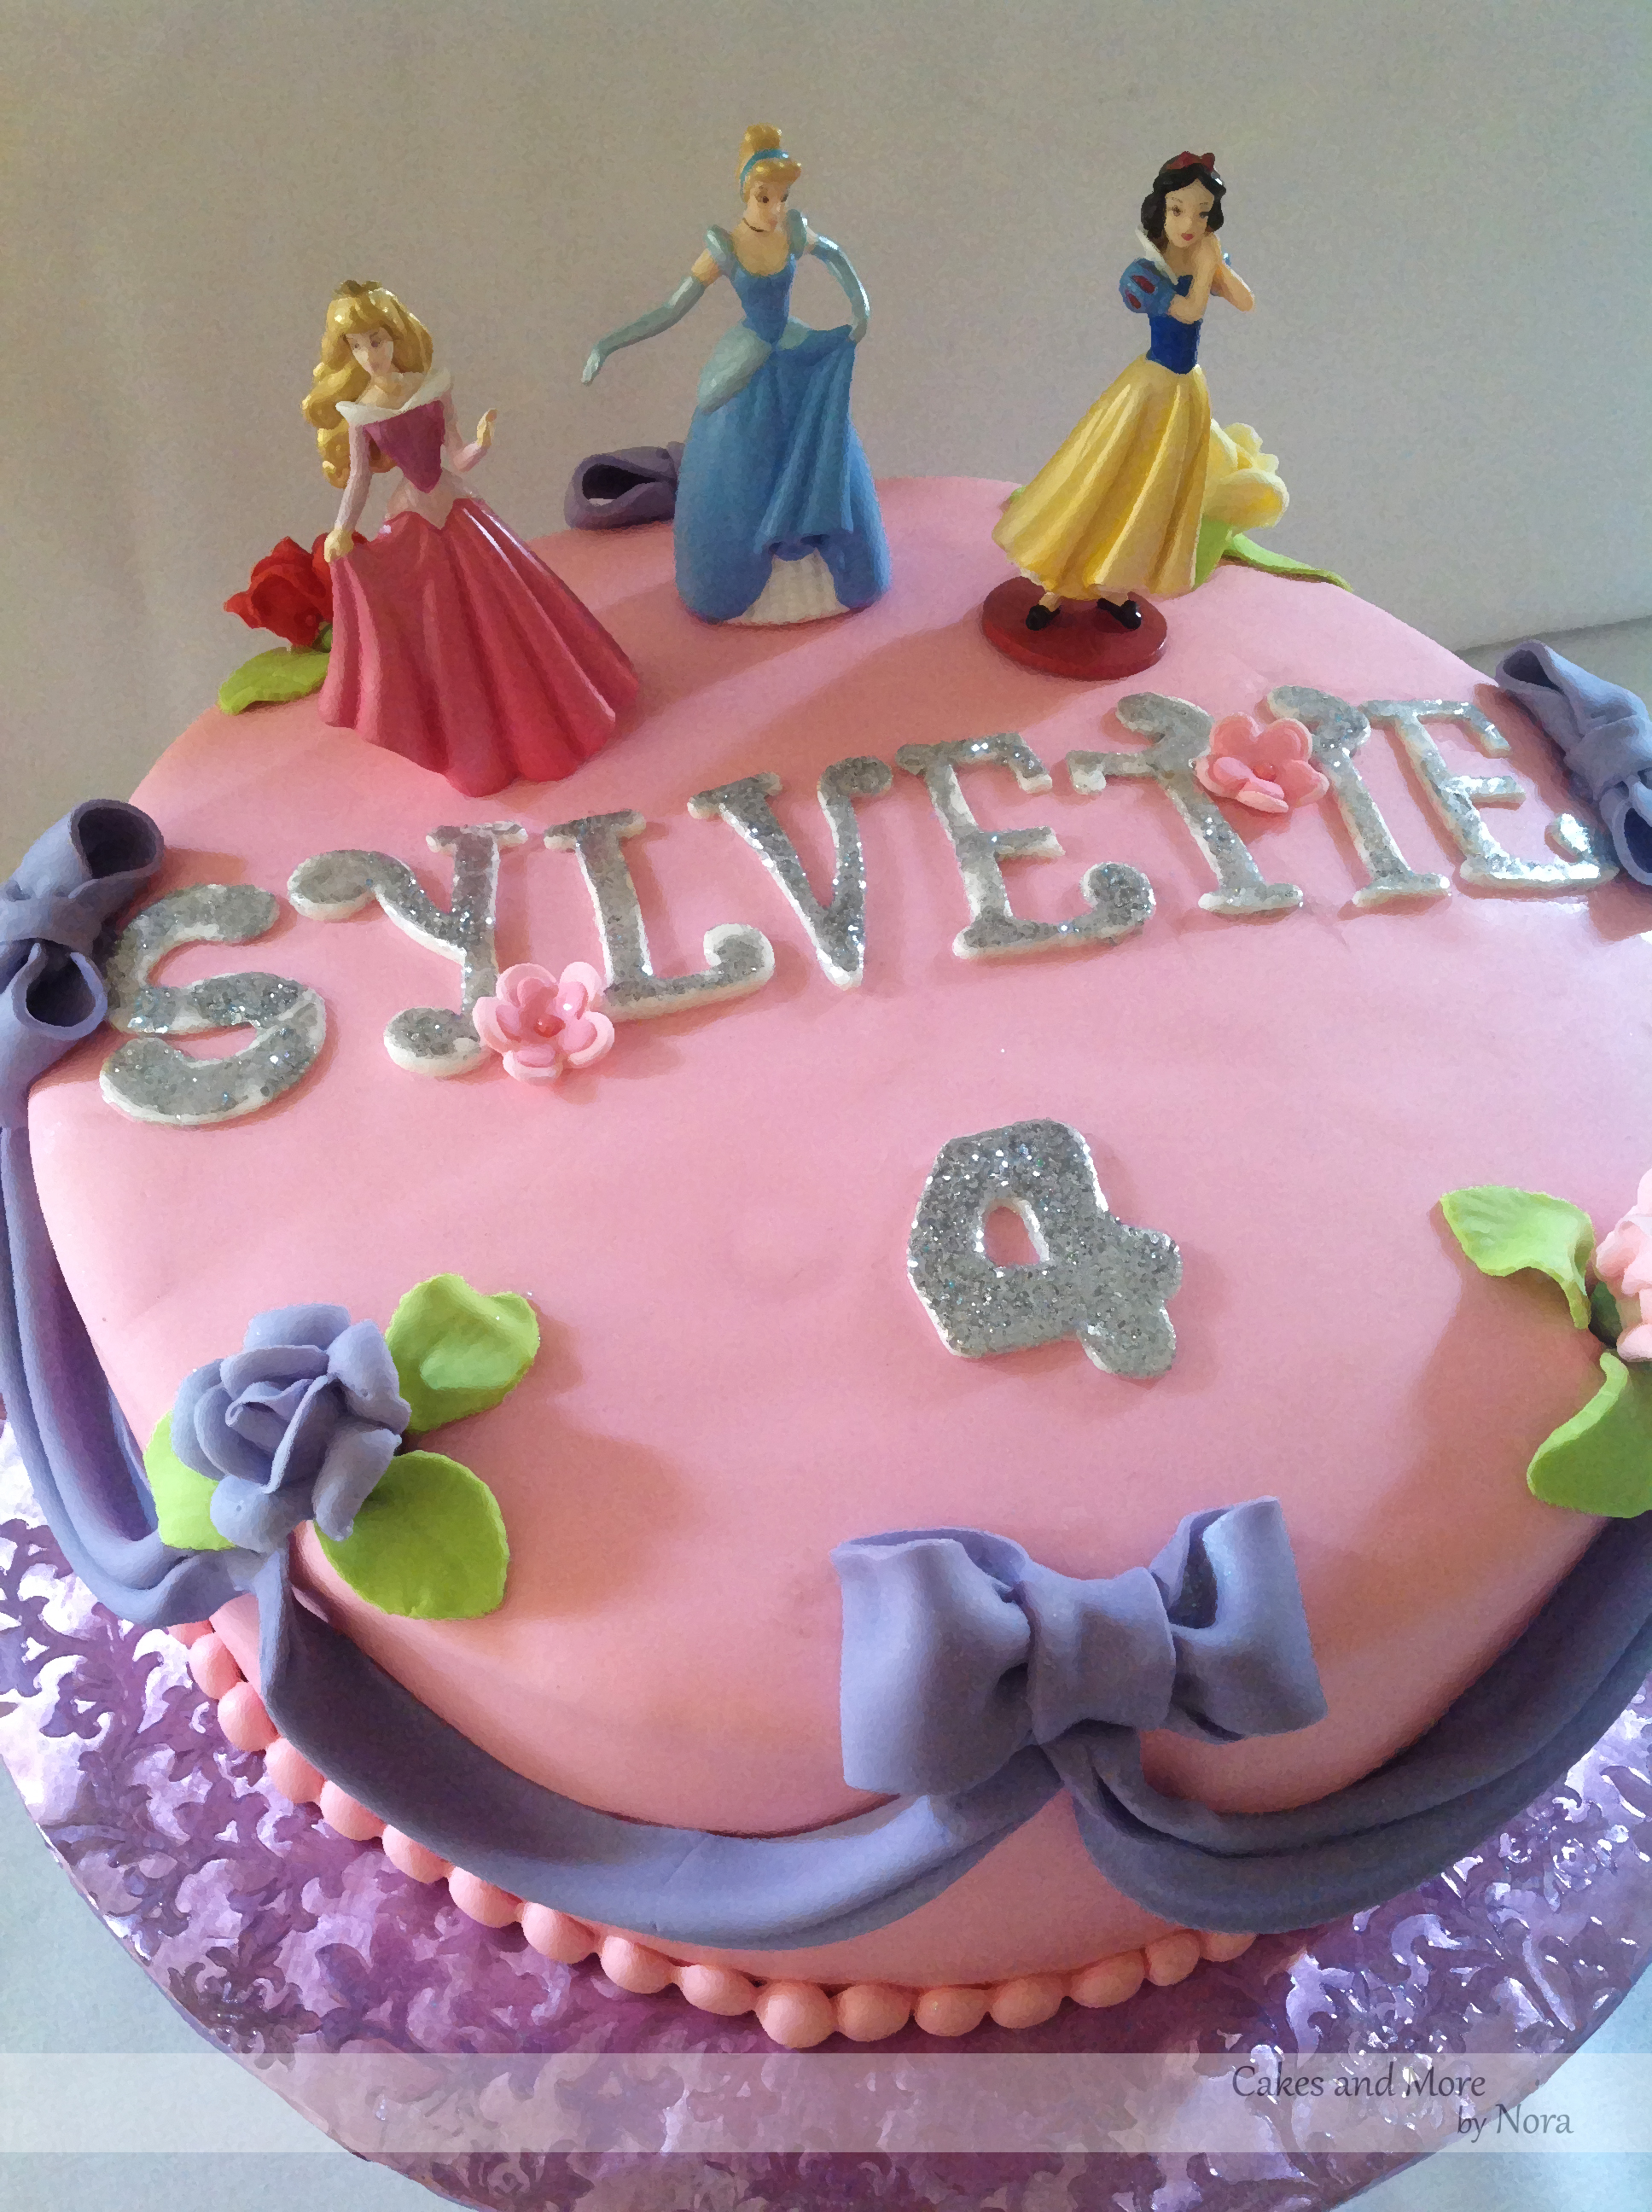 4th Birthday Cake For A Princess Cakes And More By Nora